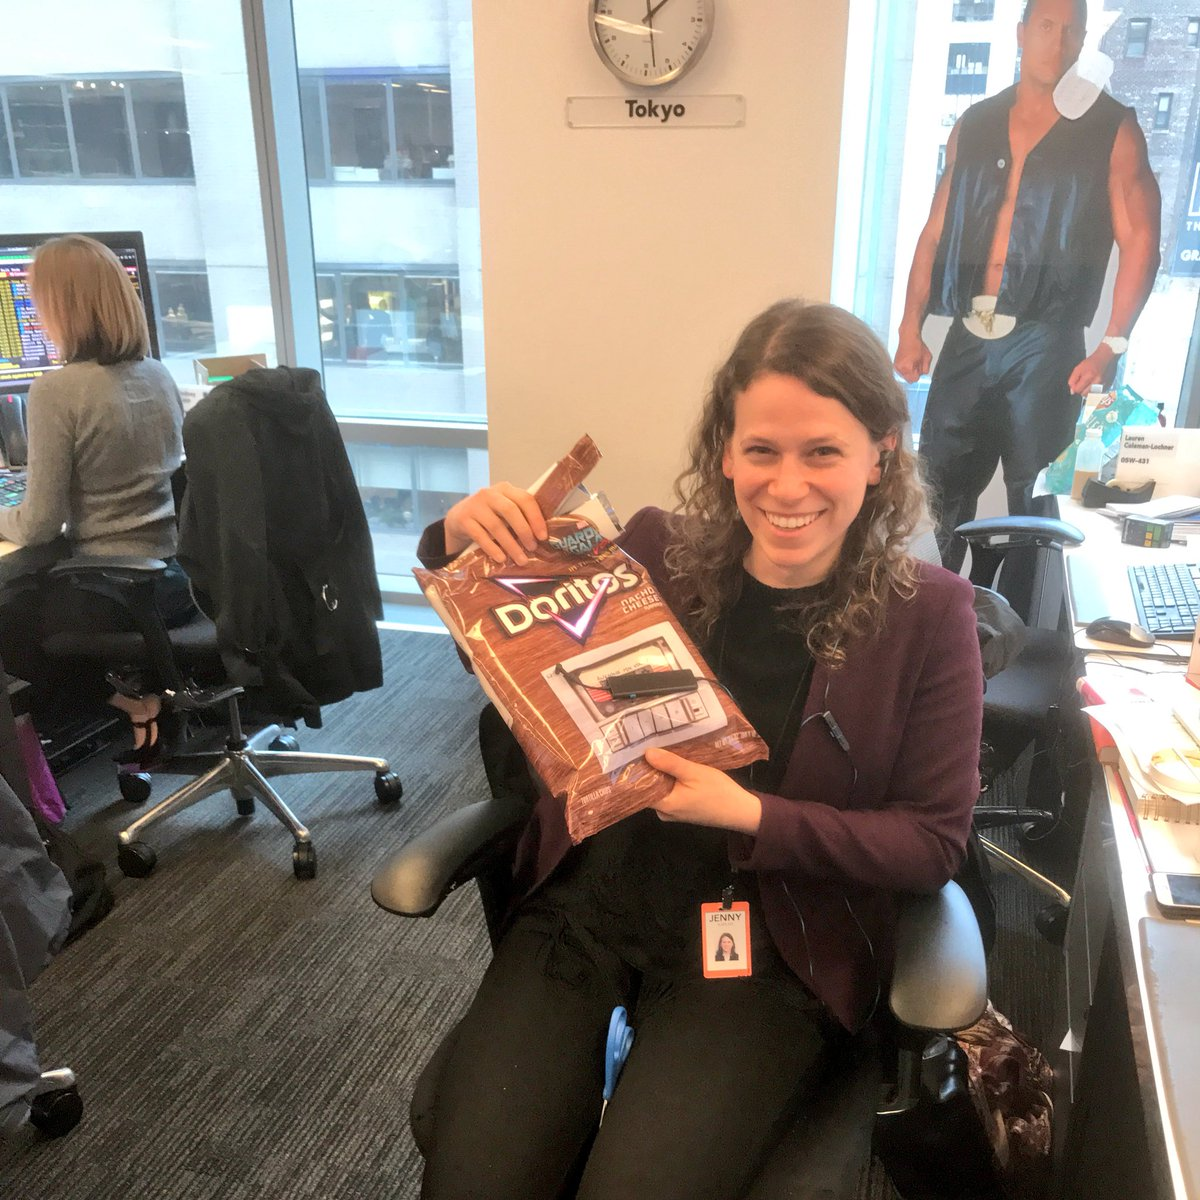 .@jennymkaplan listening to a bag of Doritos in the name of food journalism